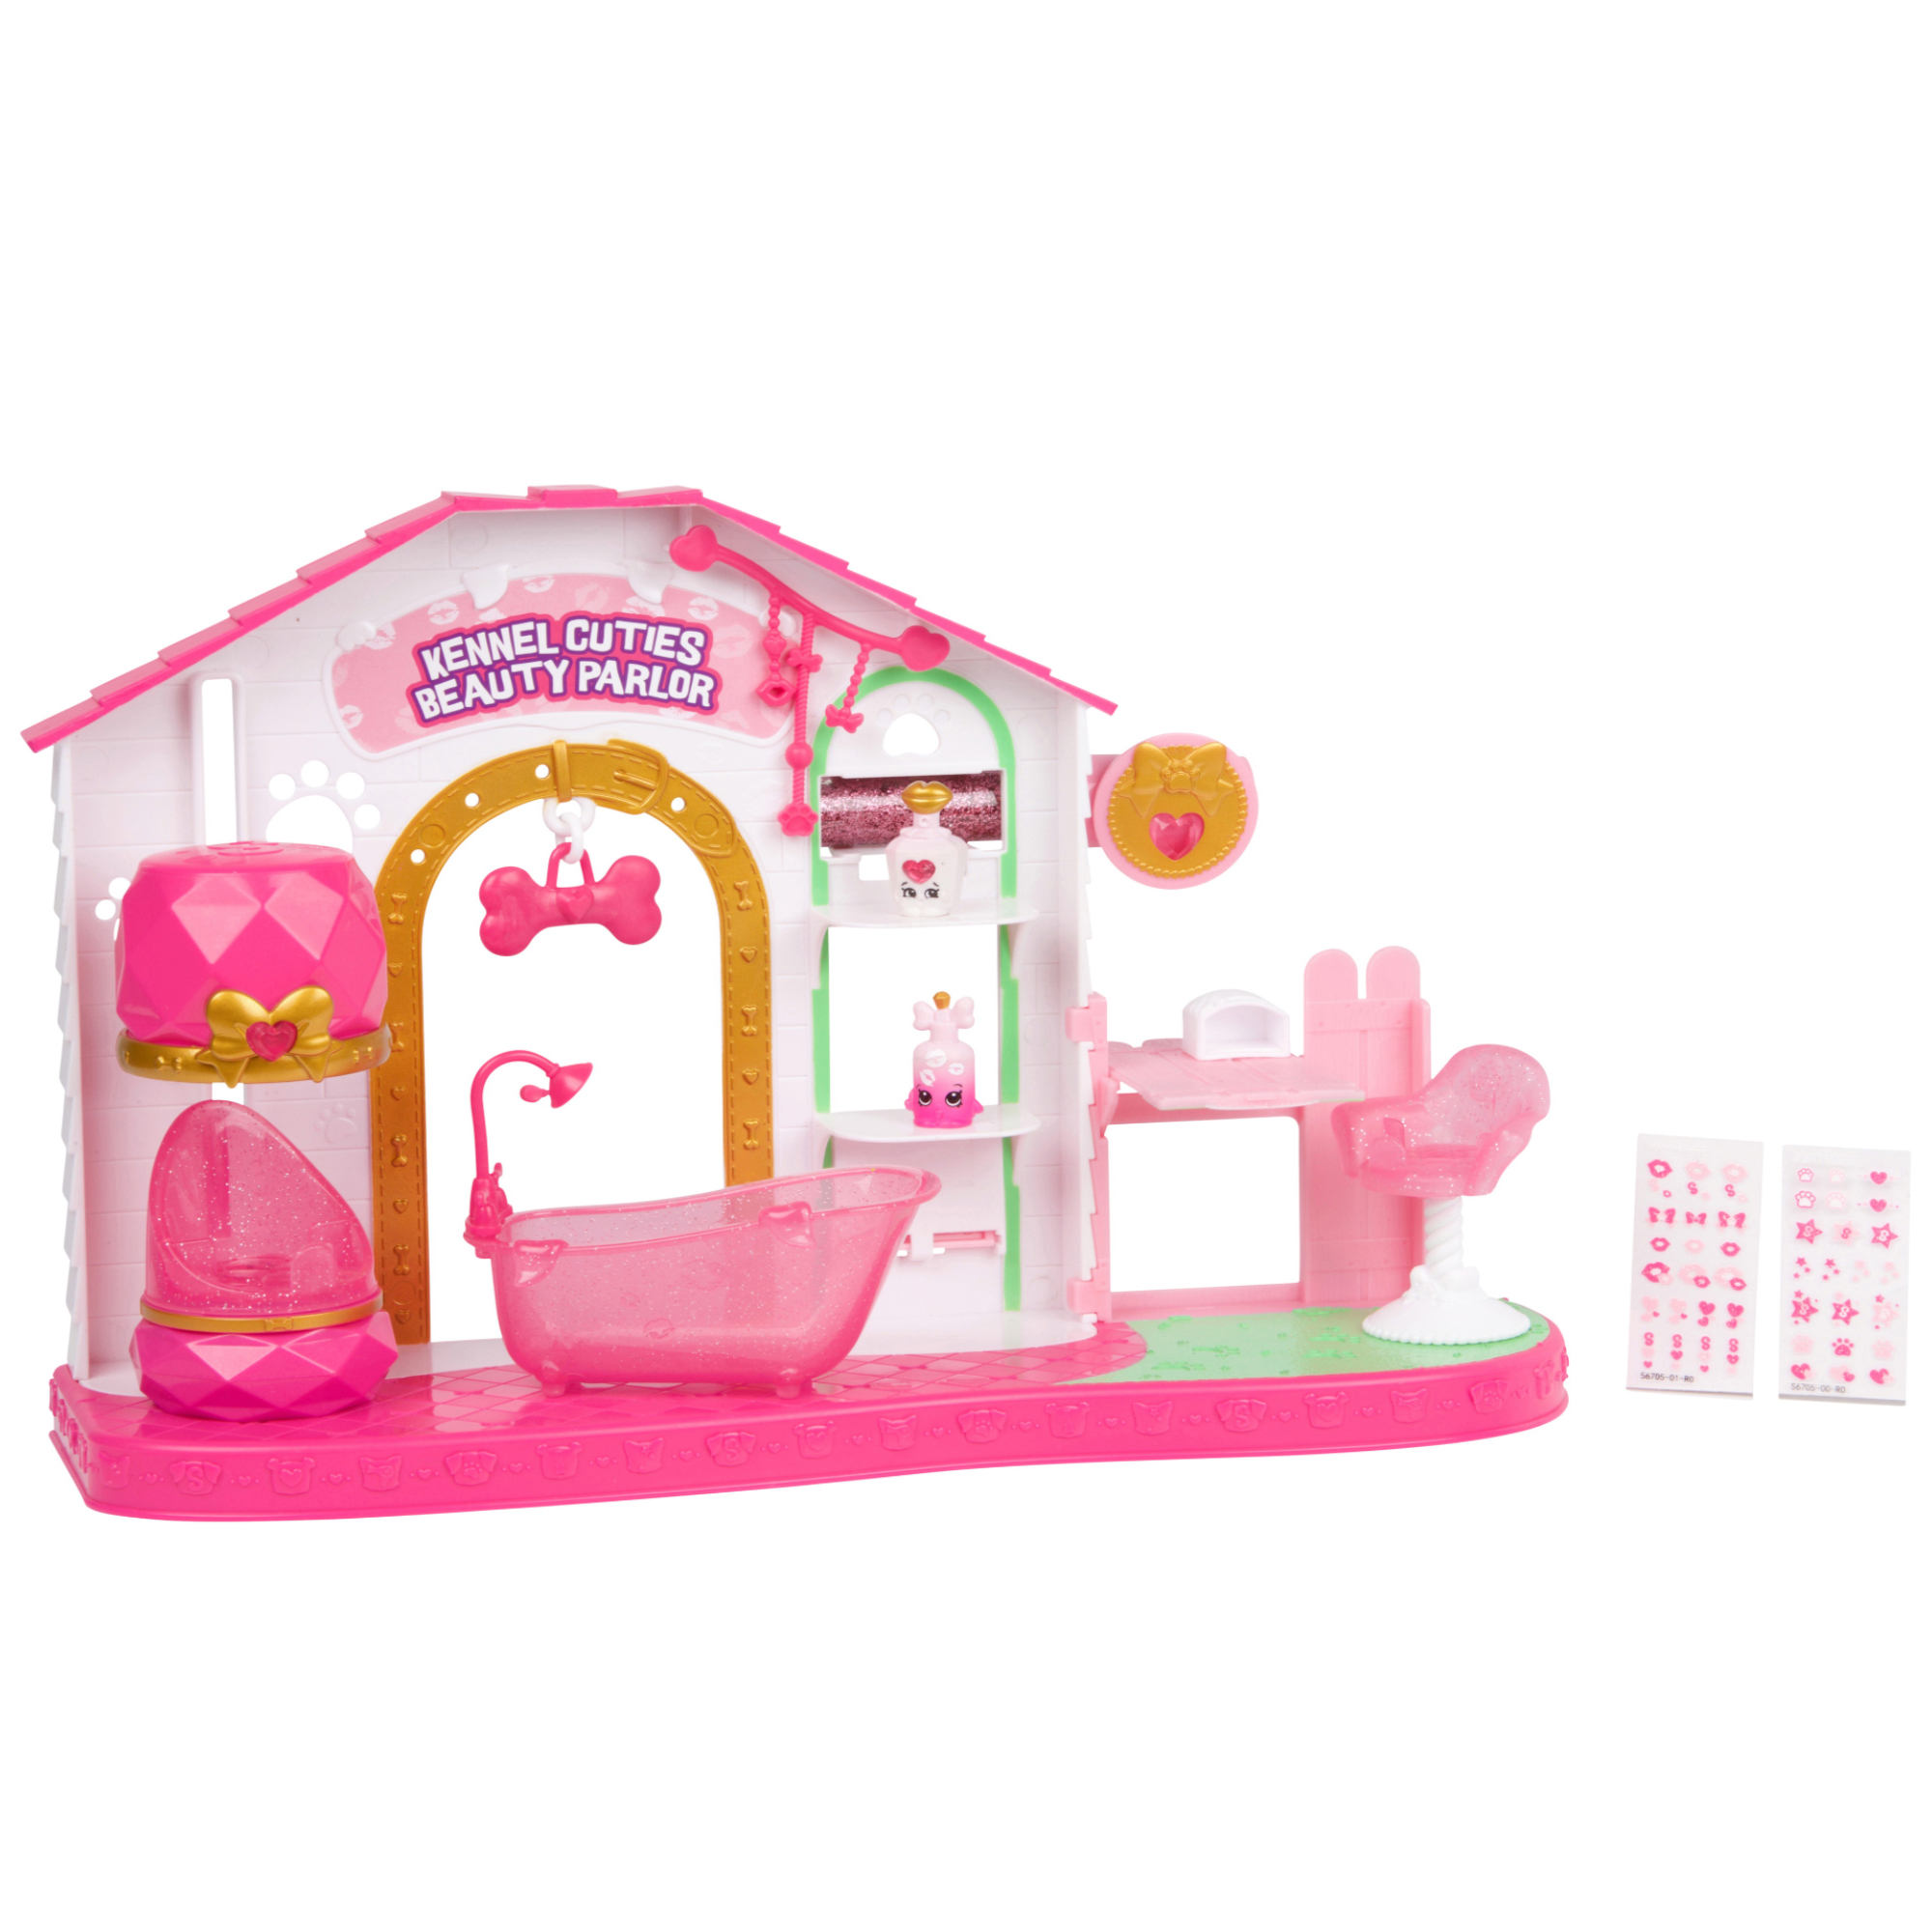 License 2 Play - Shopkins Series 9 Playset, Kennel Cuties Beauty Parlor